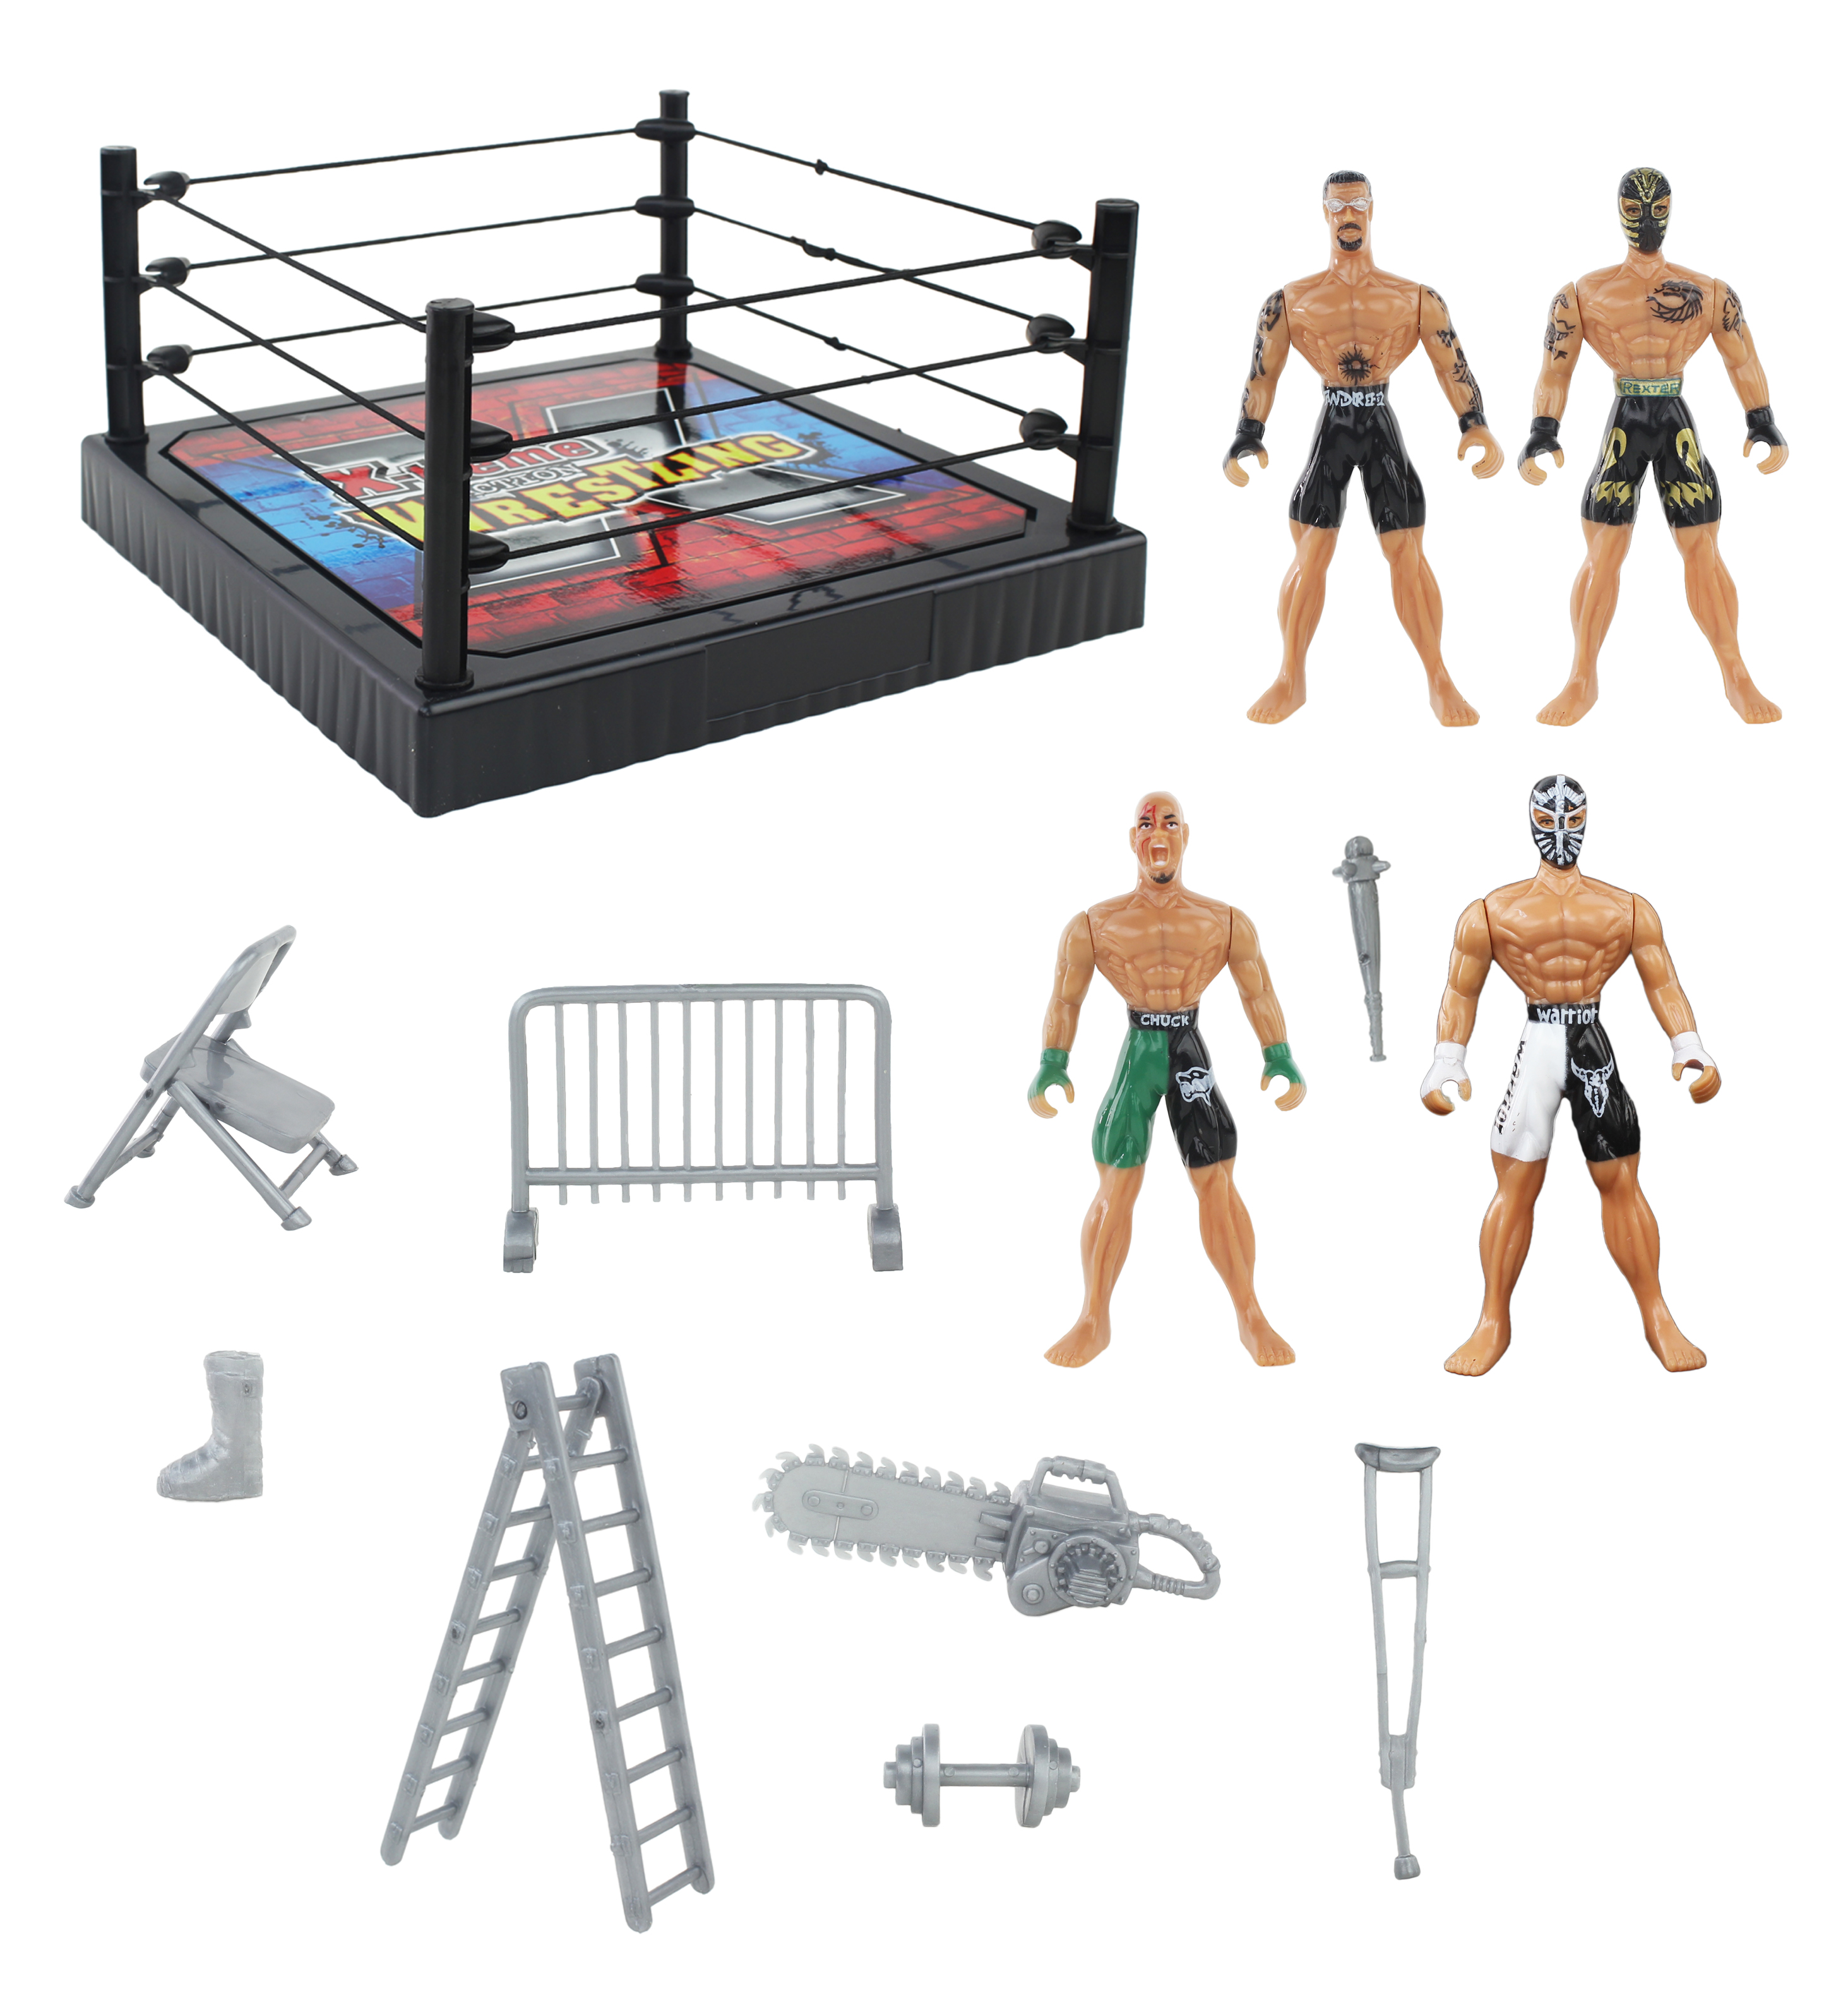 Action Figure Wrestling Ring Playset with Accessories, Wrestler Toys for Kids, Children, 4... by Vwlocit Toys